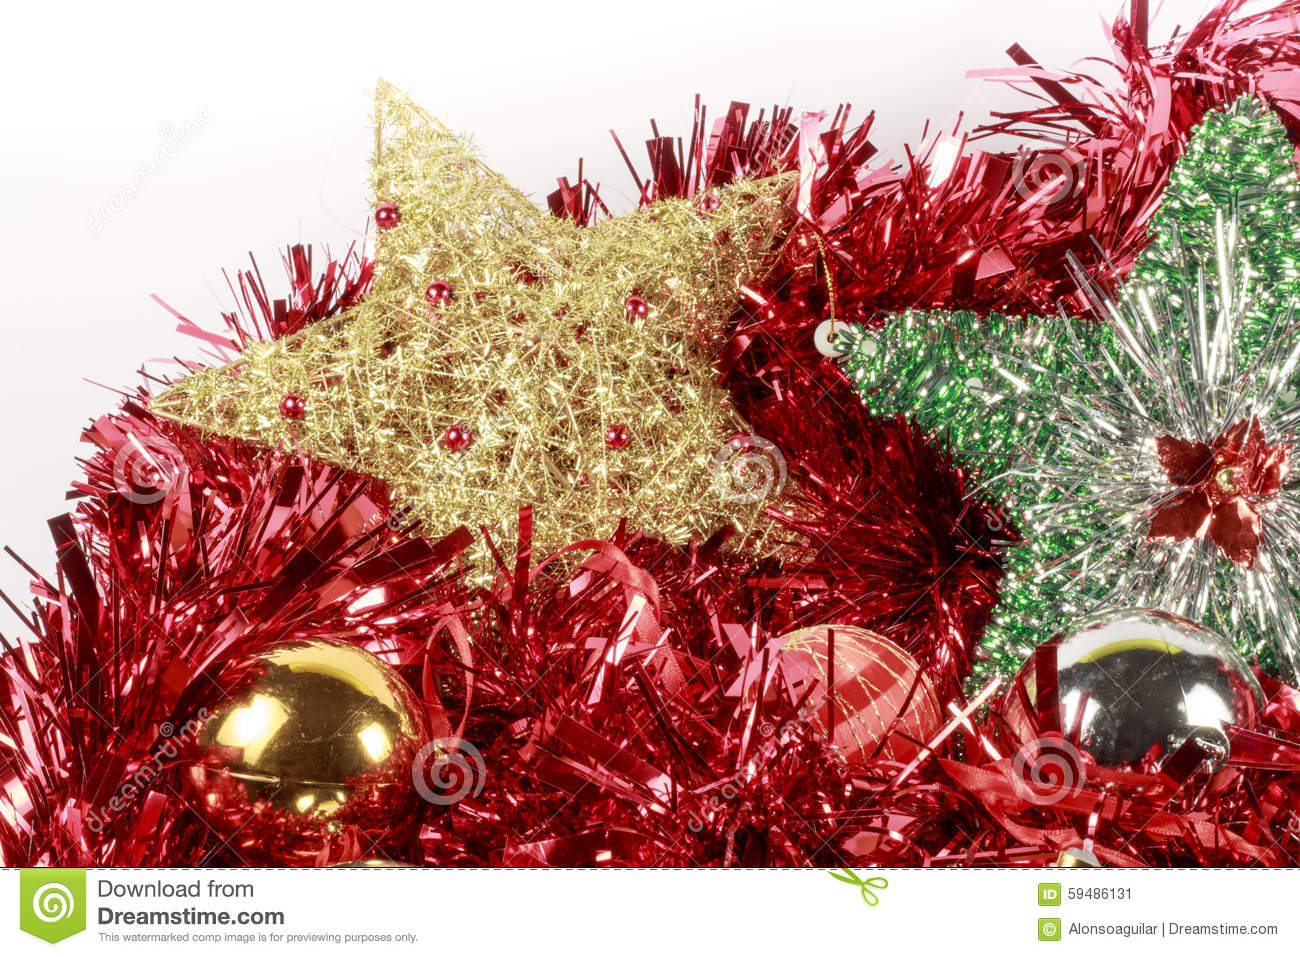 Different types of christmas trees pictures - Christmas Tree Stars And Baubles Of Different Types Over A Red Garland Stock Photo